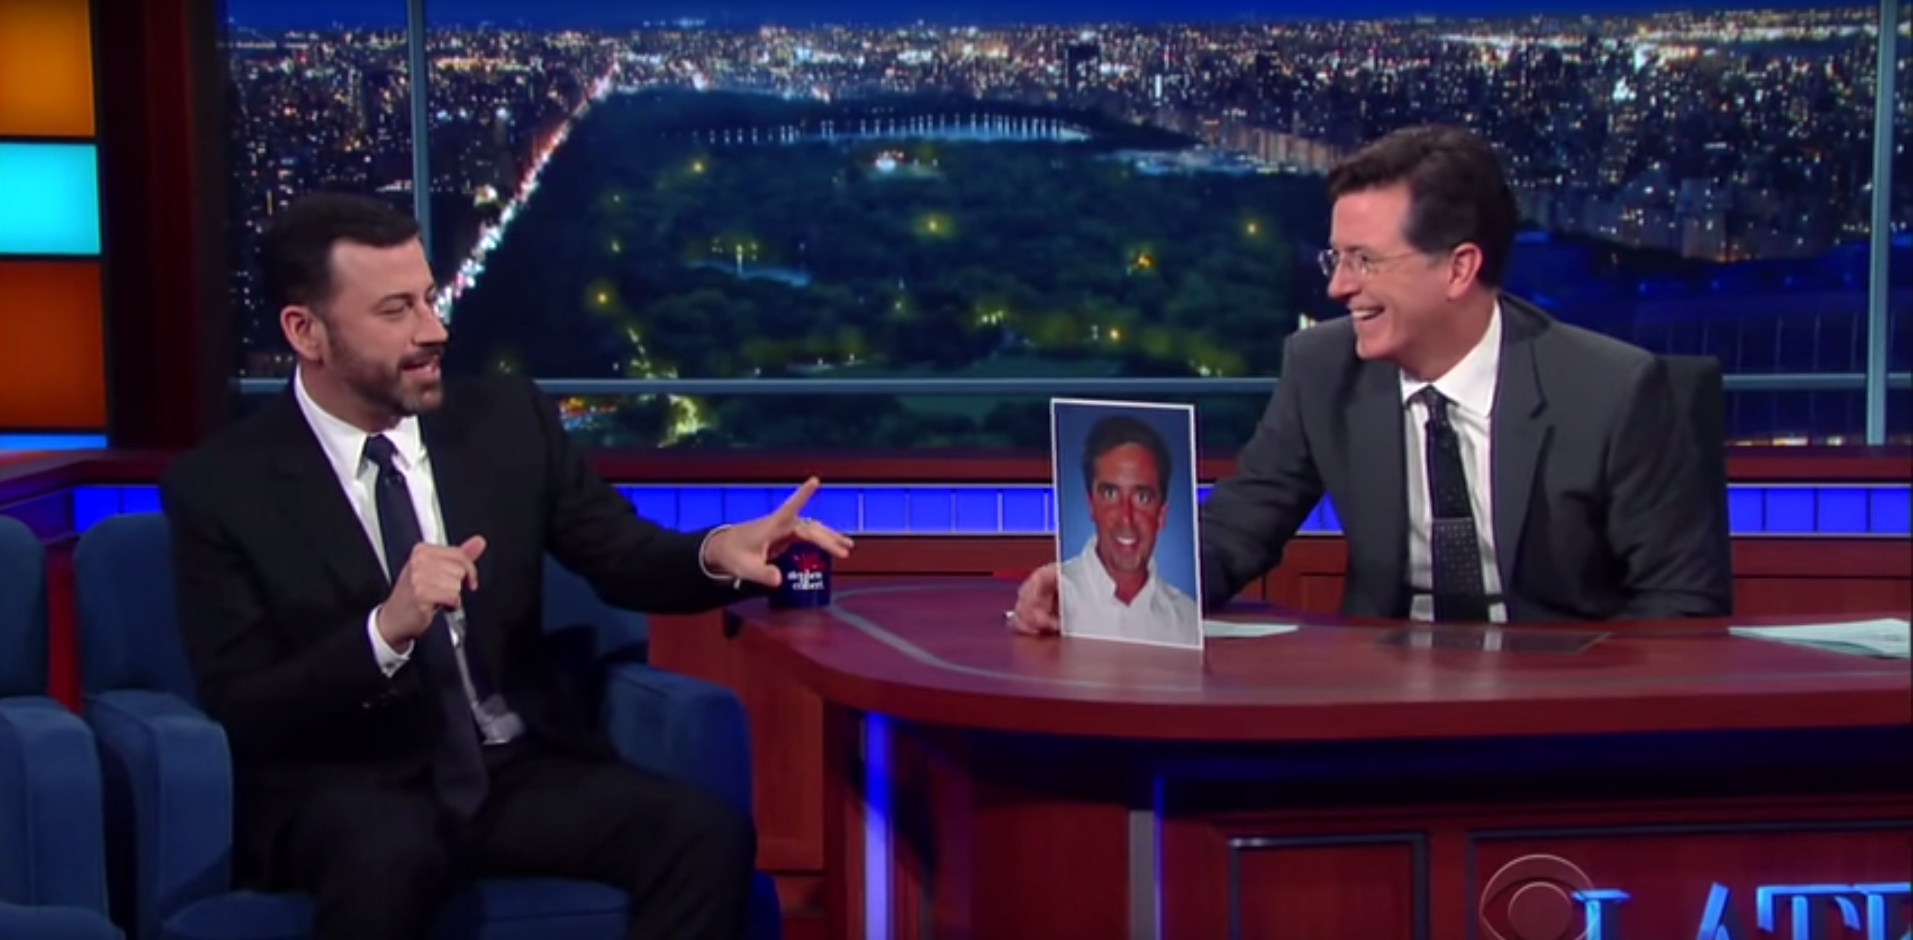 Stephen Colbert, Jimmy Kimmel Discuss \'Real King of Late-Night ...